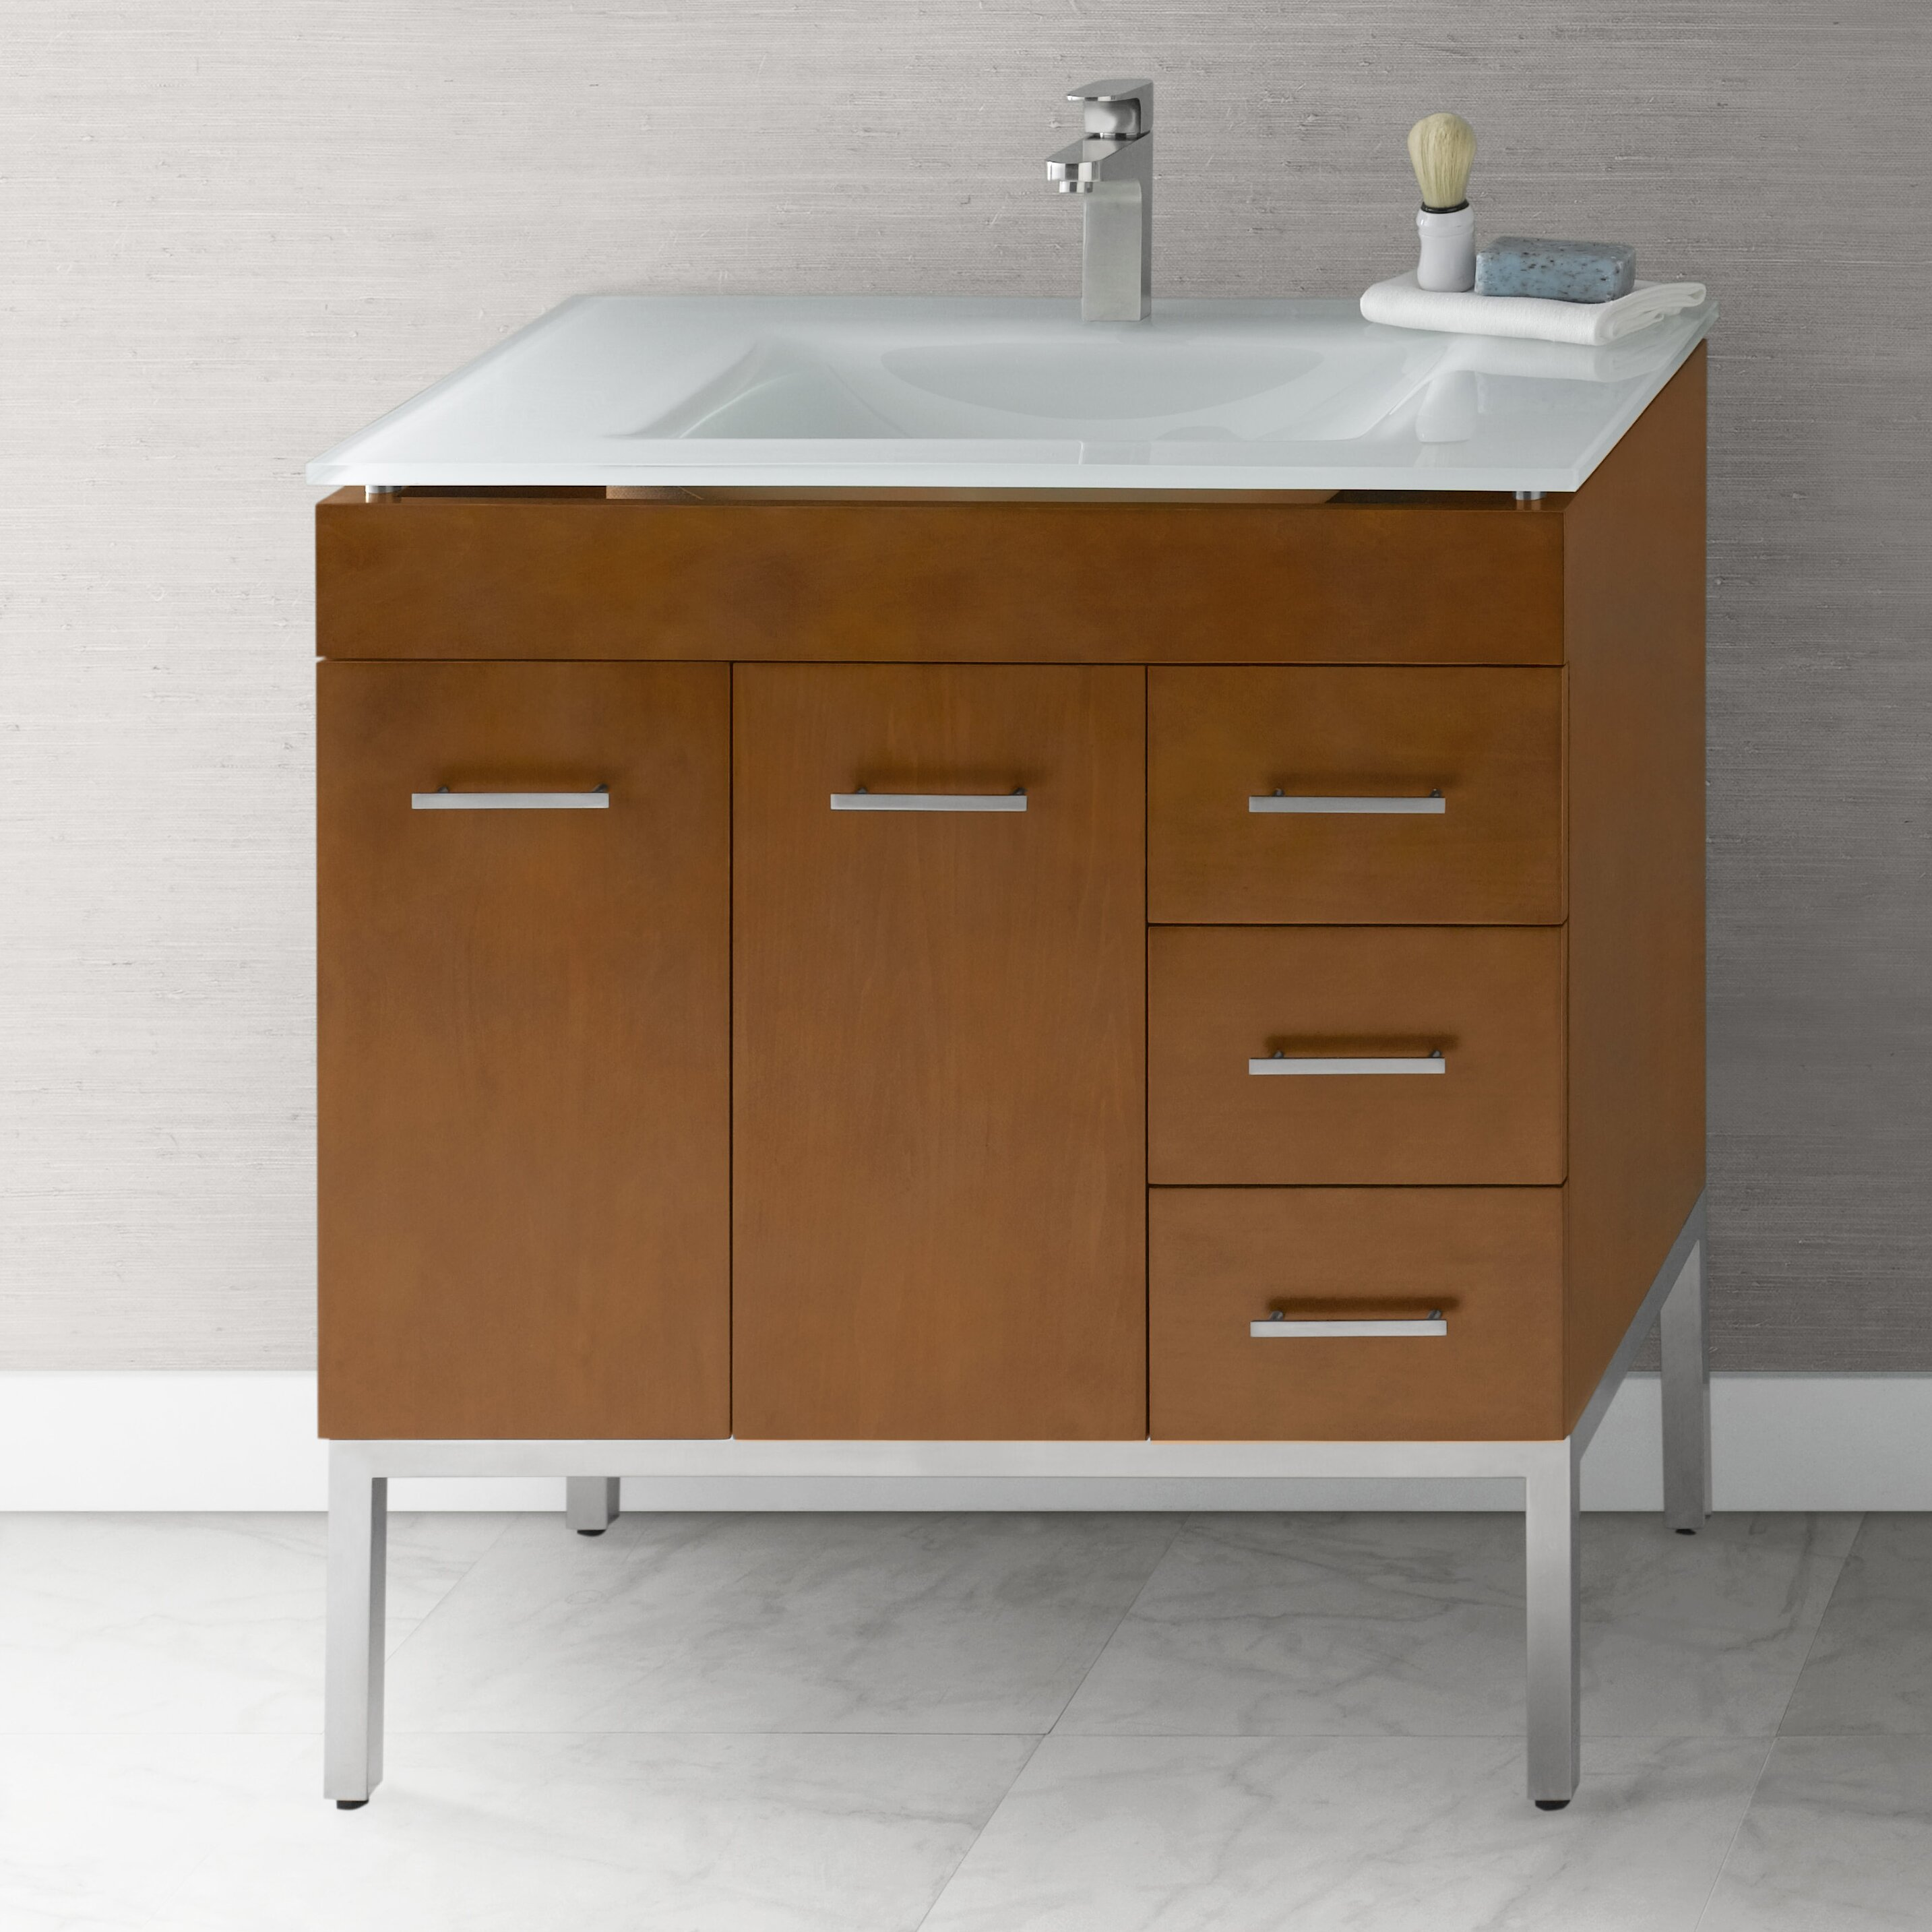 bathroom vanity base cabinet in cinnamon doors on left metal legs